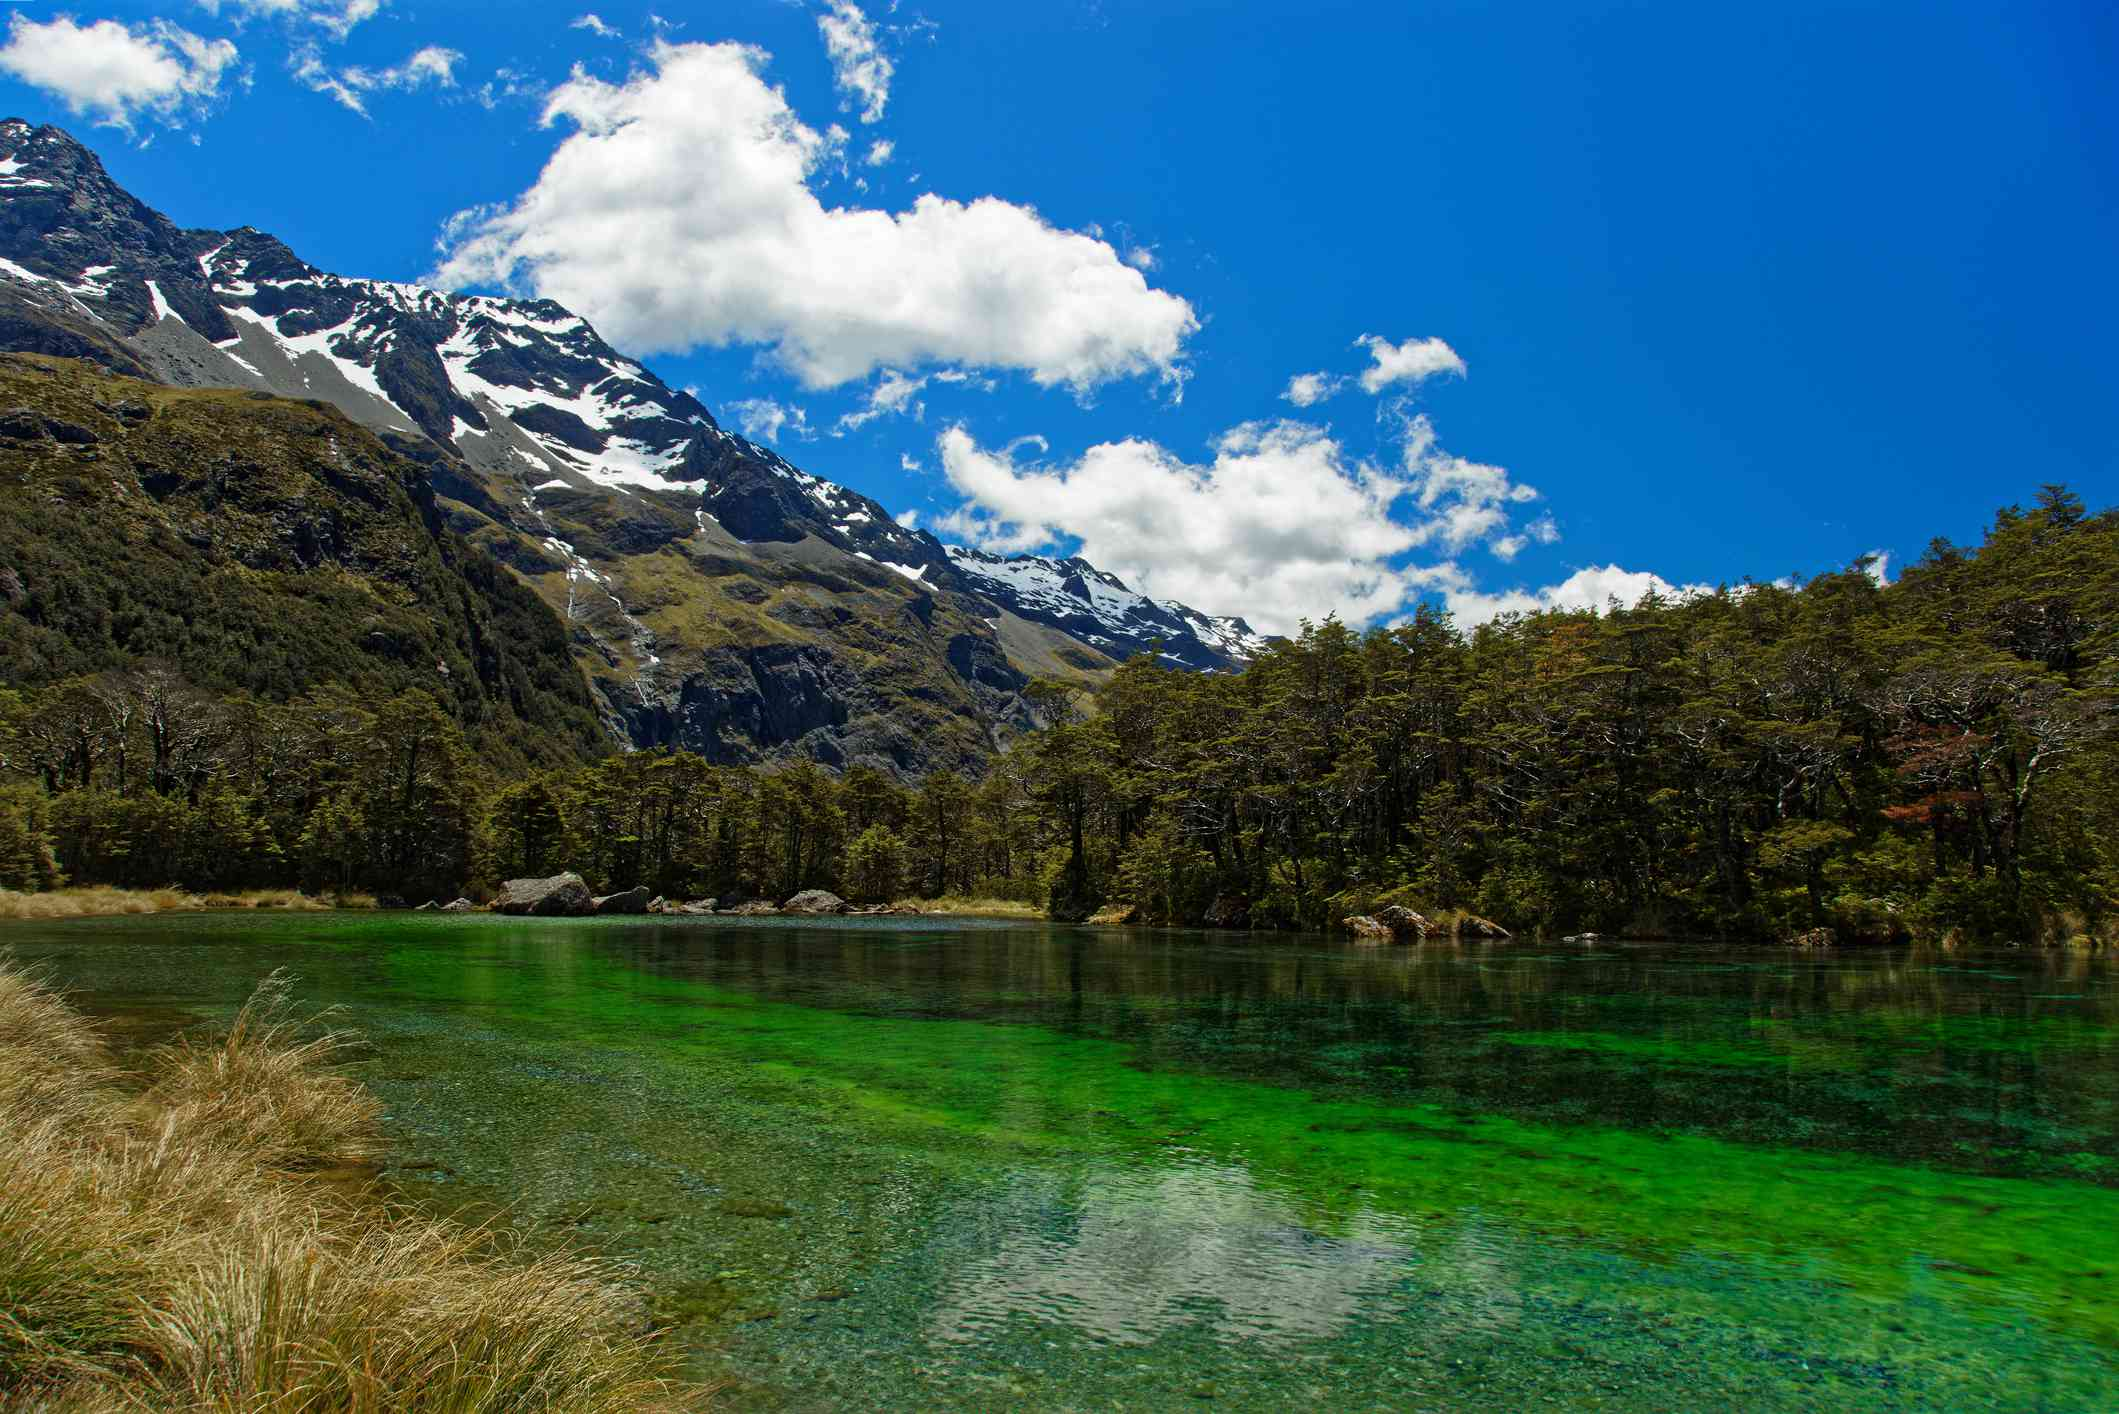 clear green lake surrounded by forest and mountains